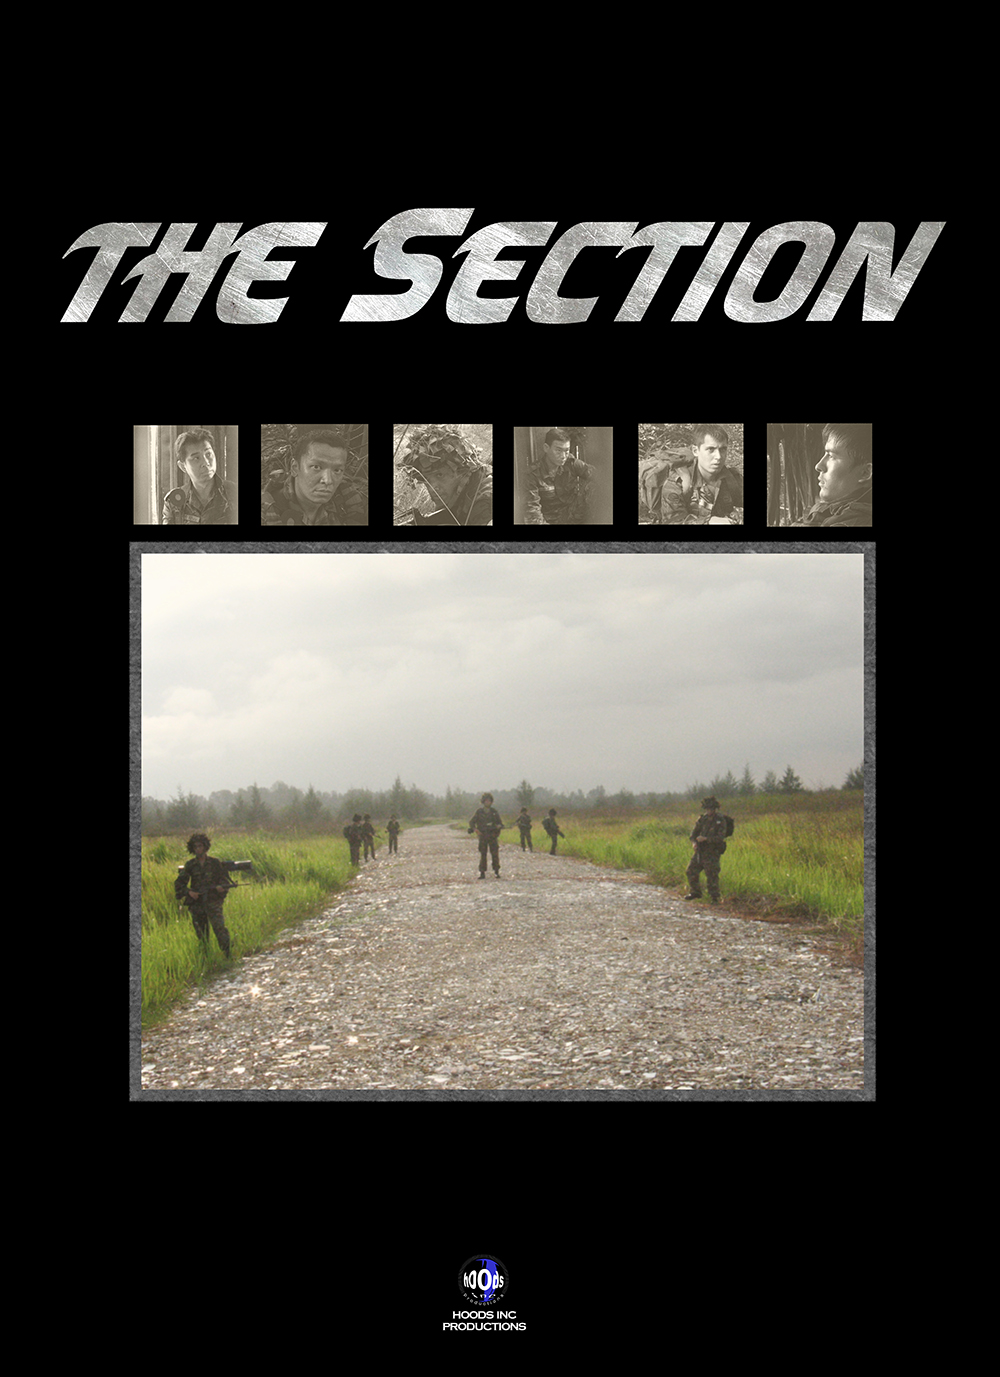 The Section